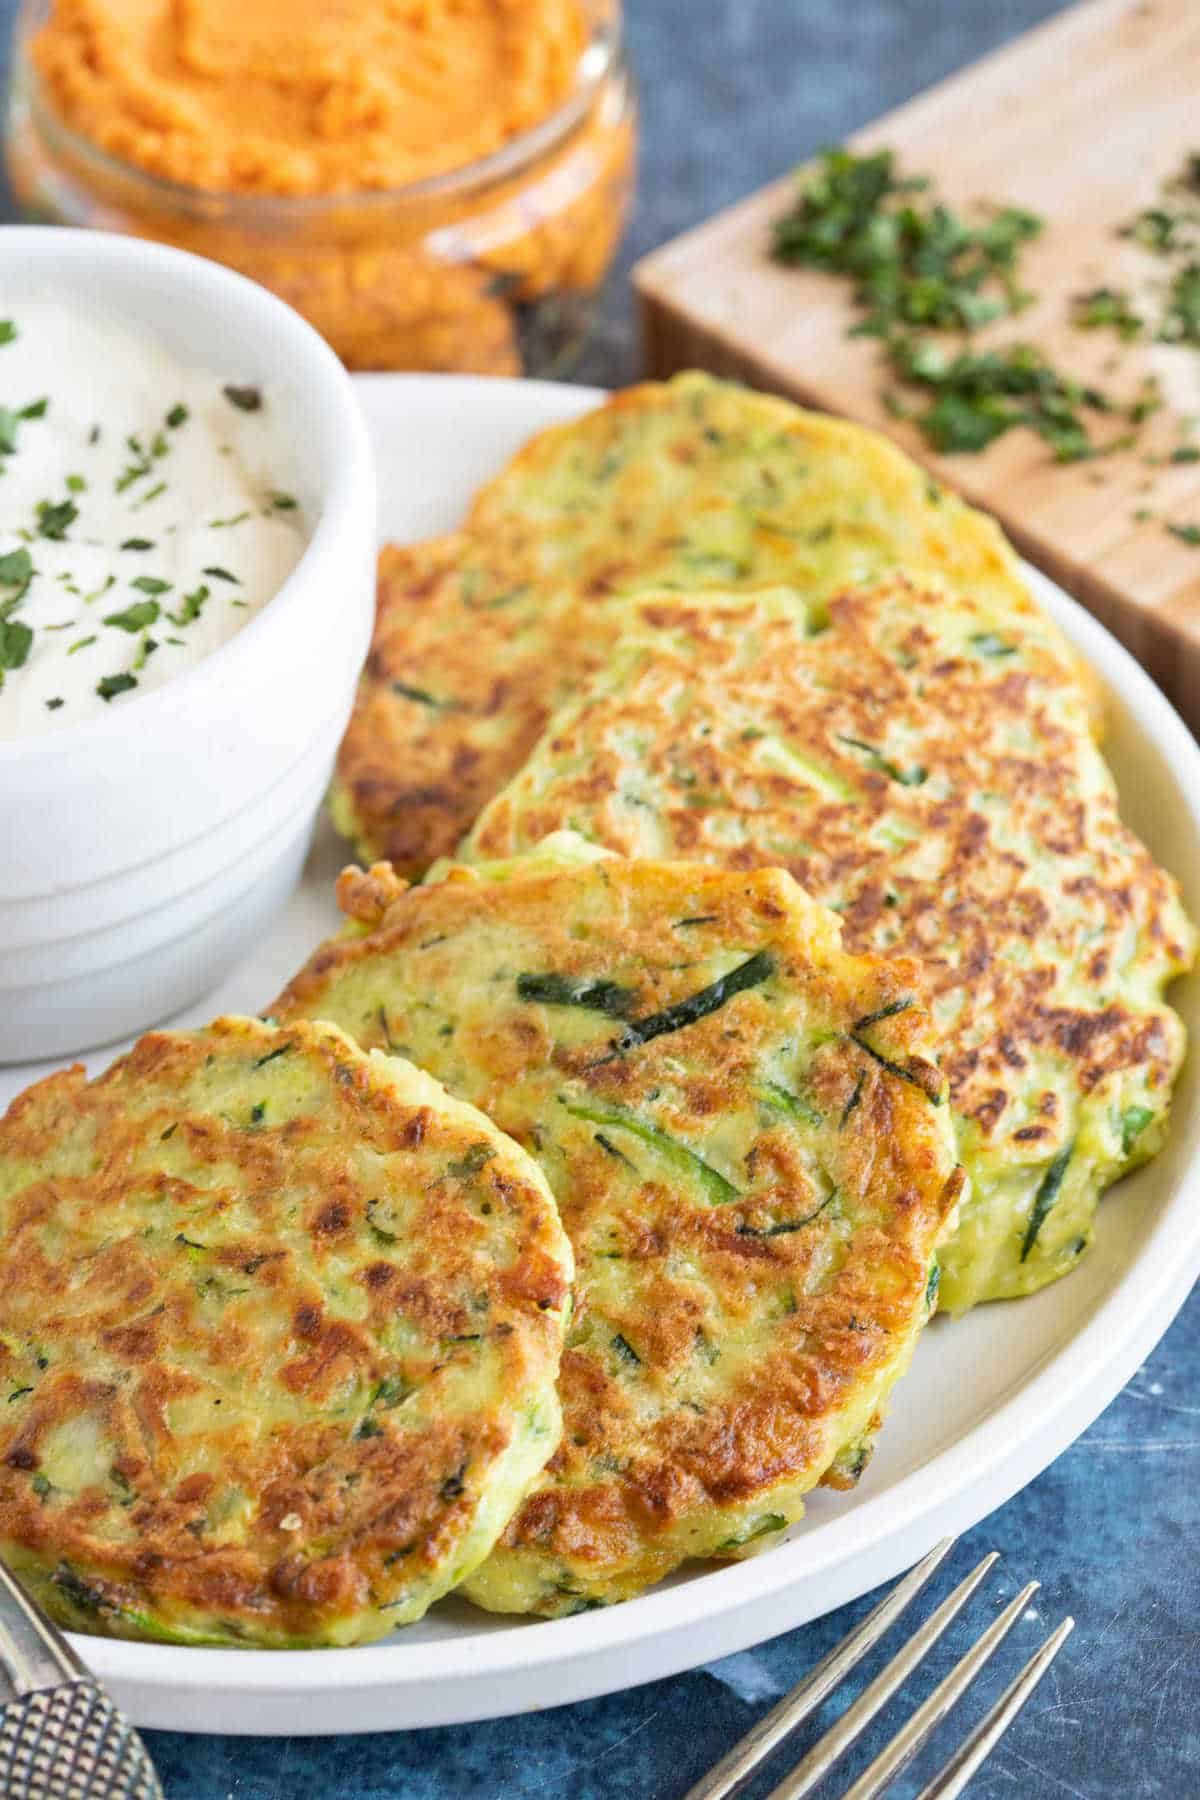 Courgette and halloumi firtters.